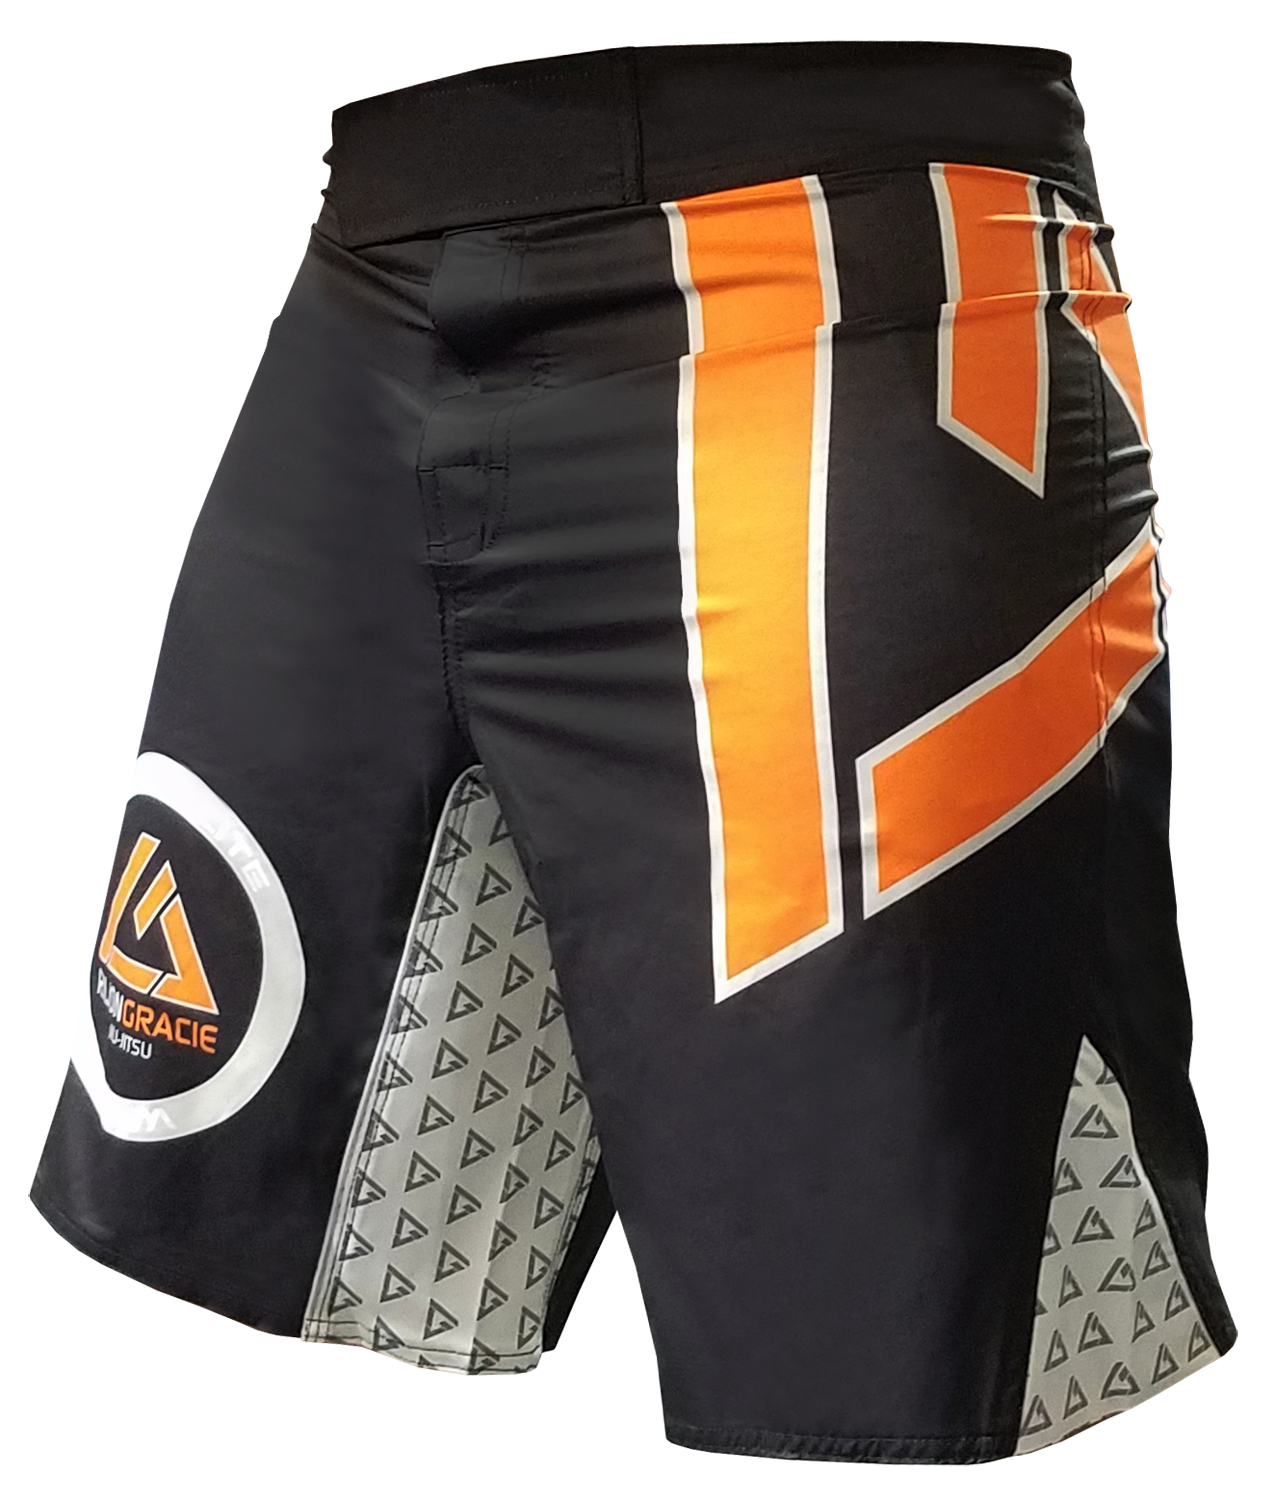 Rilion Gracie Fight Kids Shorts